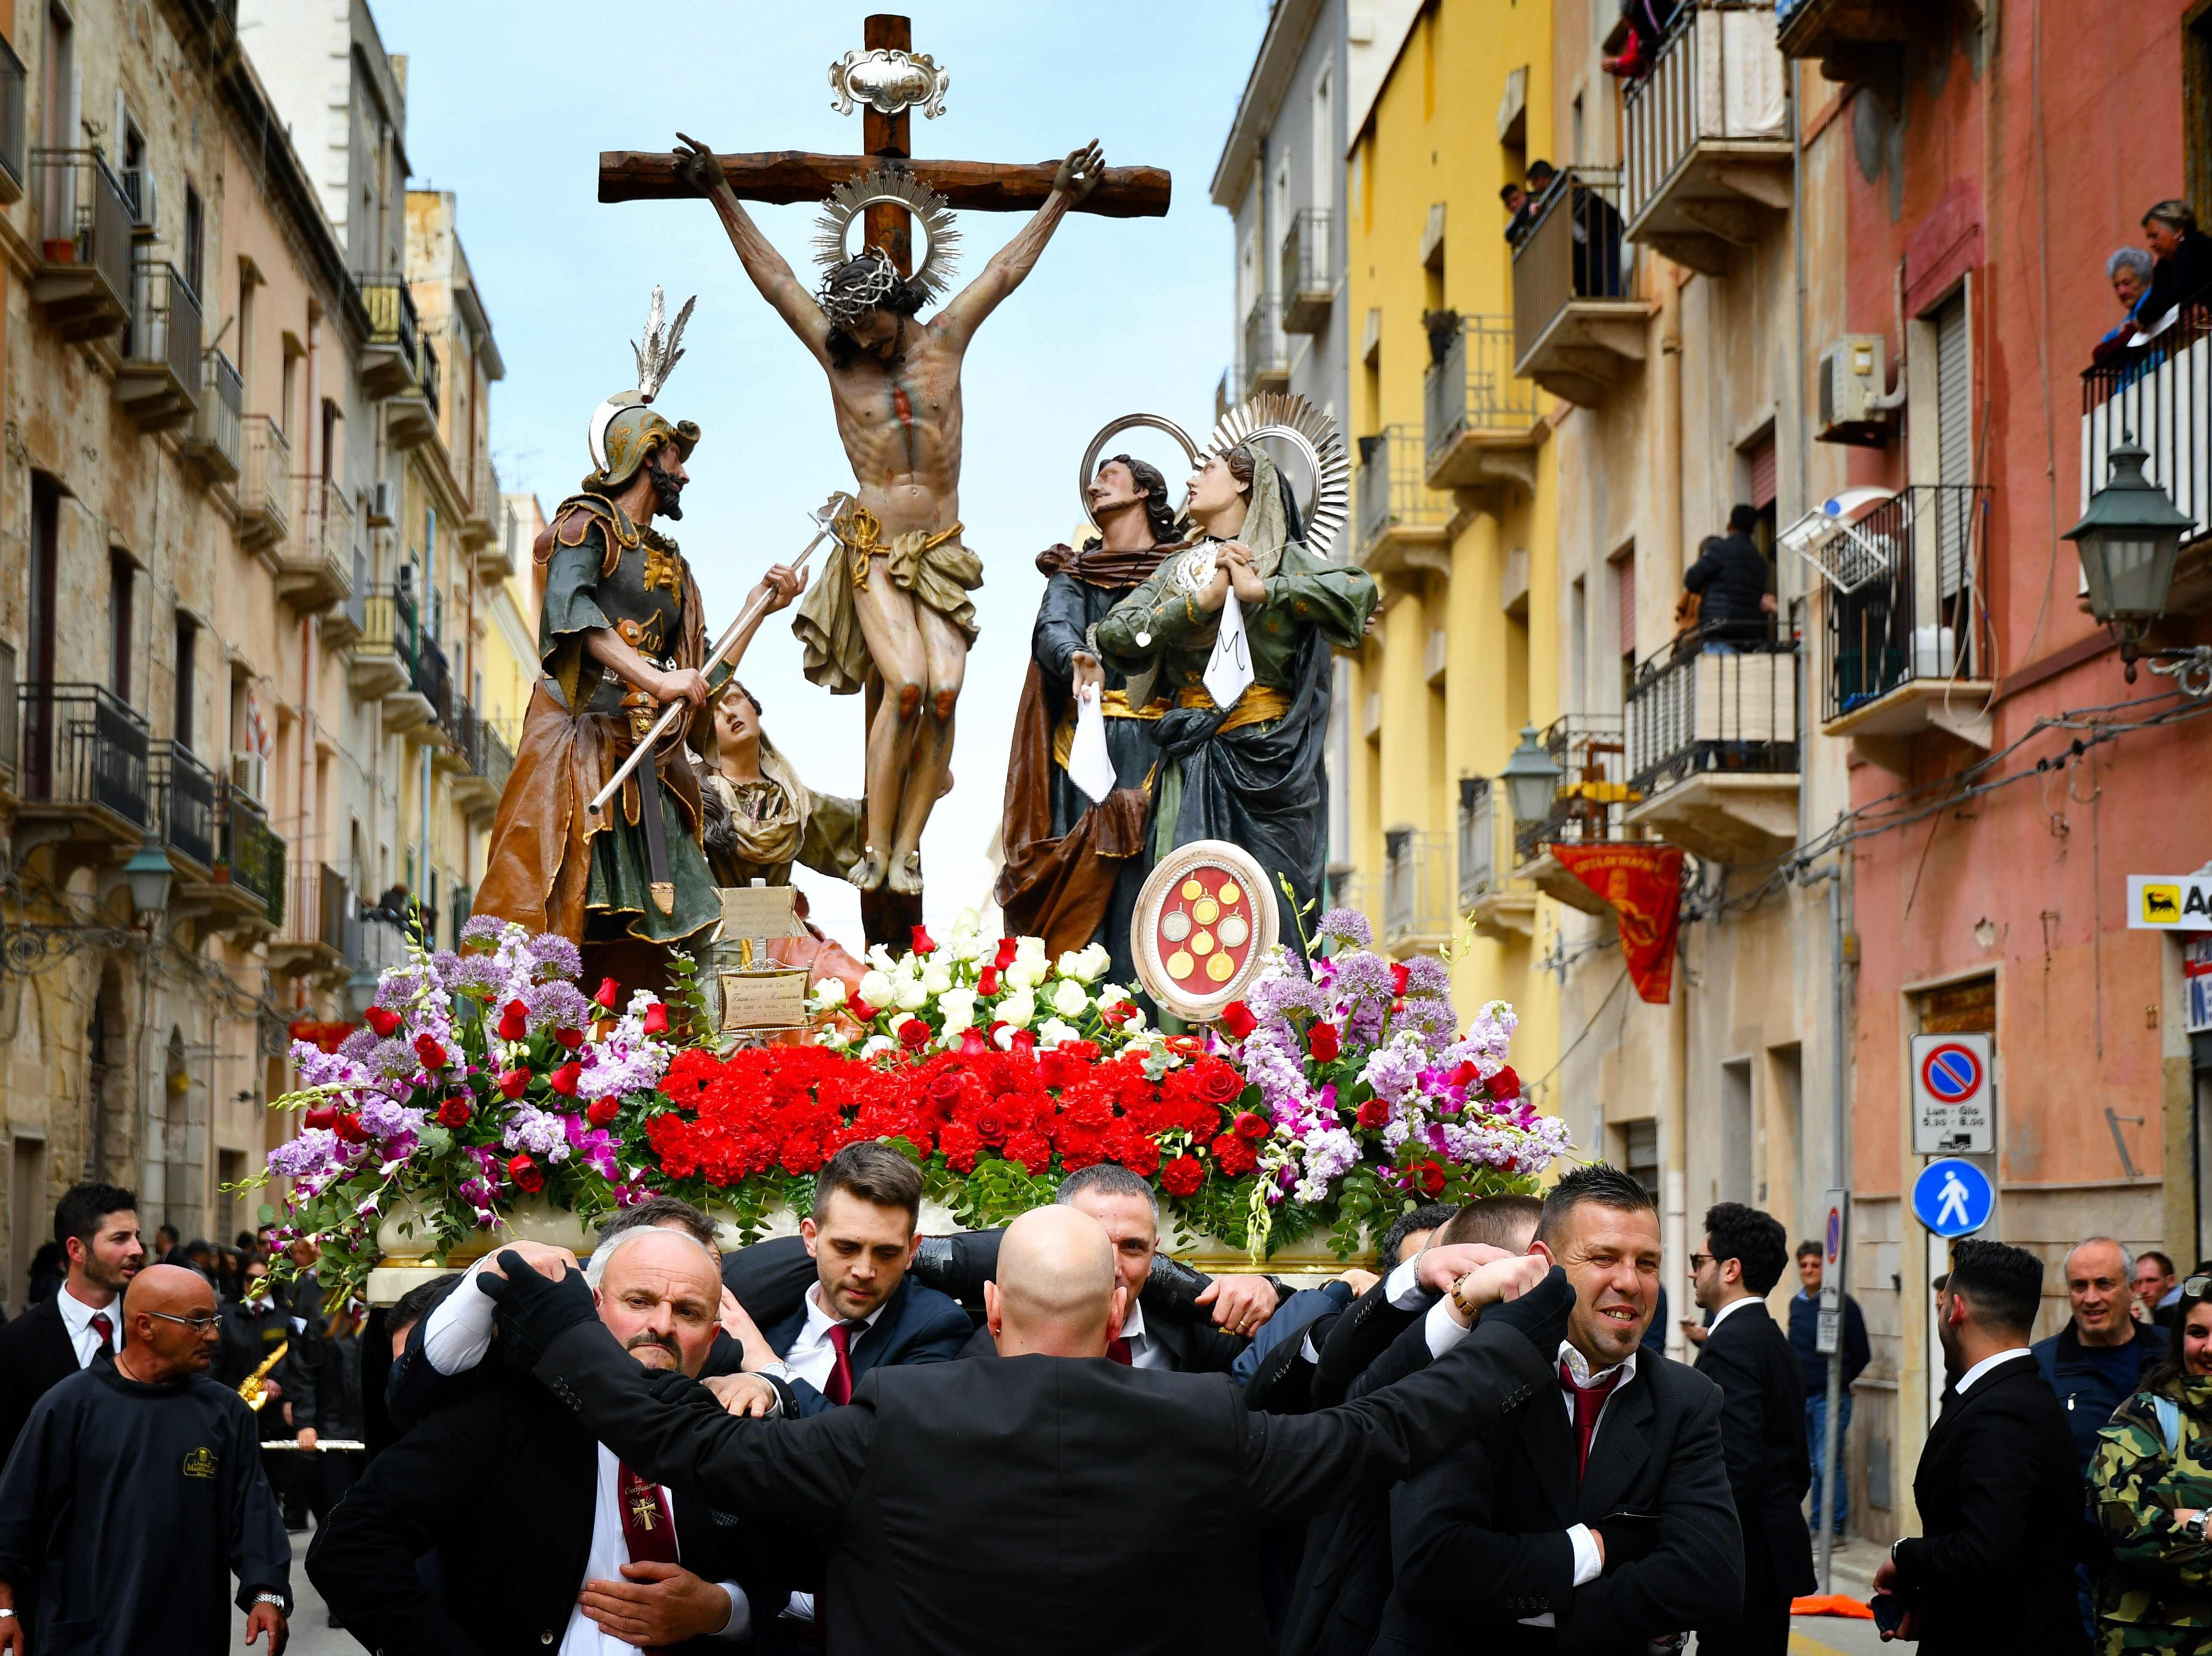 Men carry a Christ Crucified and statues of the Passion of the Christ during the traditional Easter Procession of the Mysteries (Processione Dei Misteri) in Trapani, Sicily, on April 20, 2019.